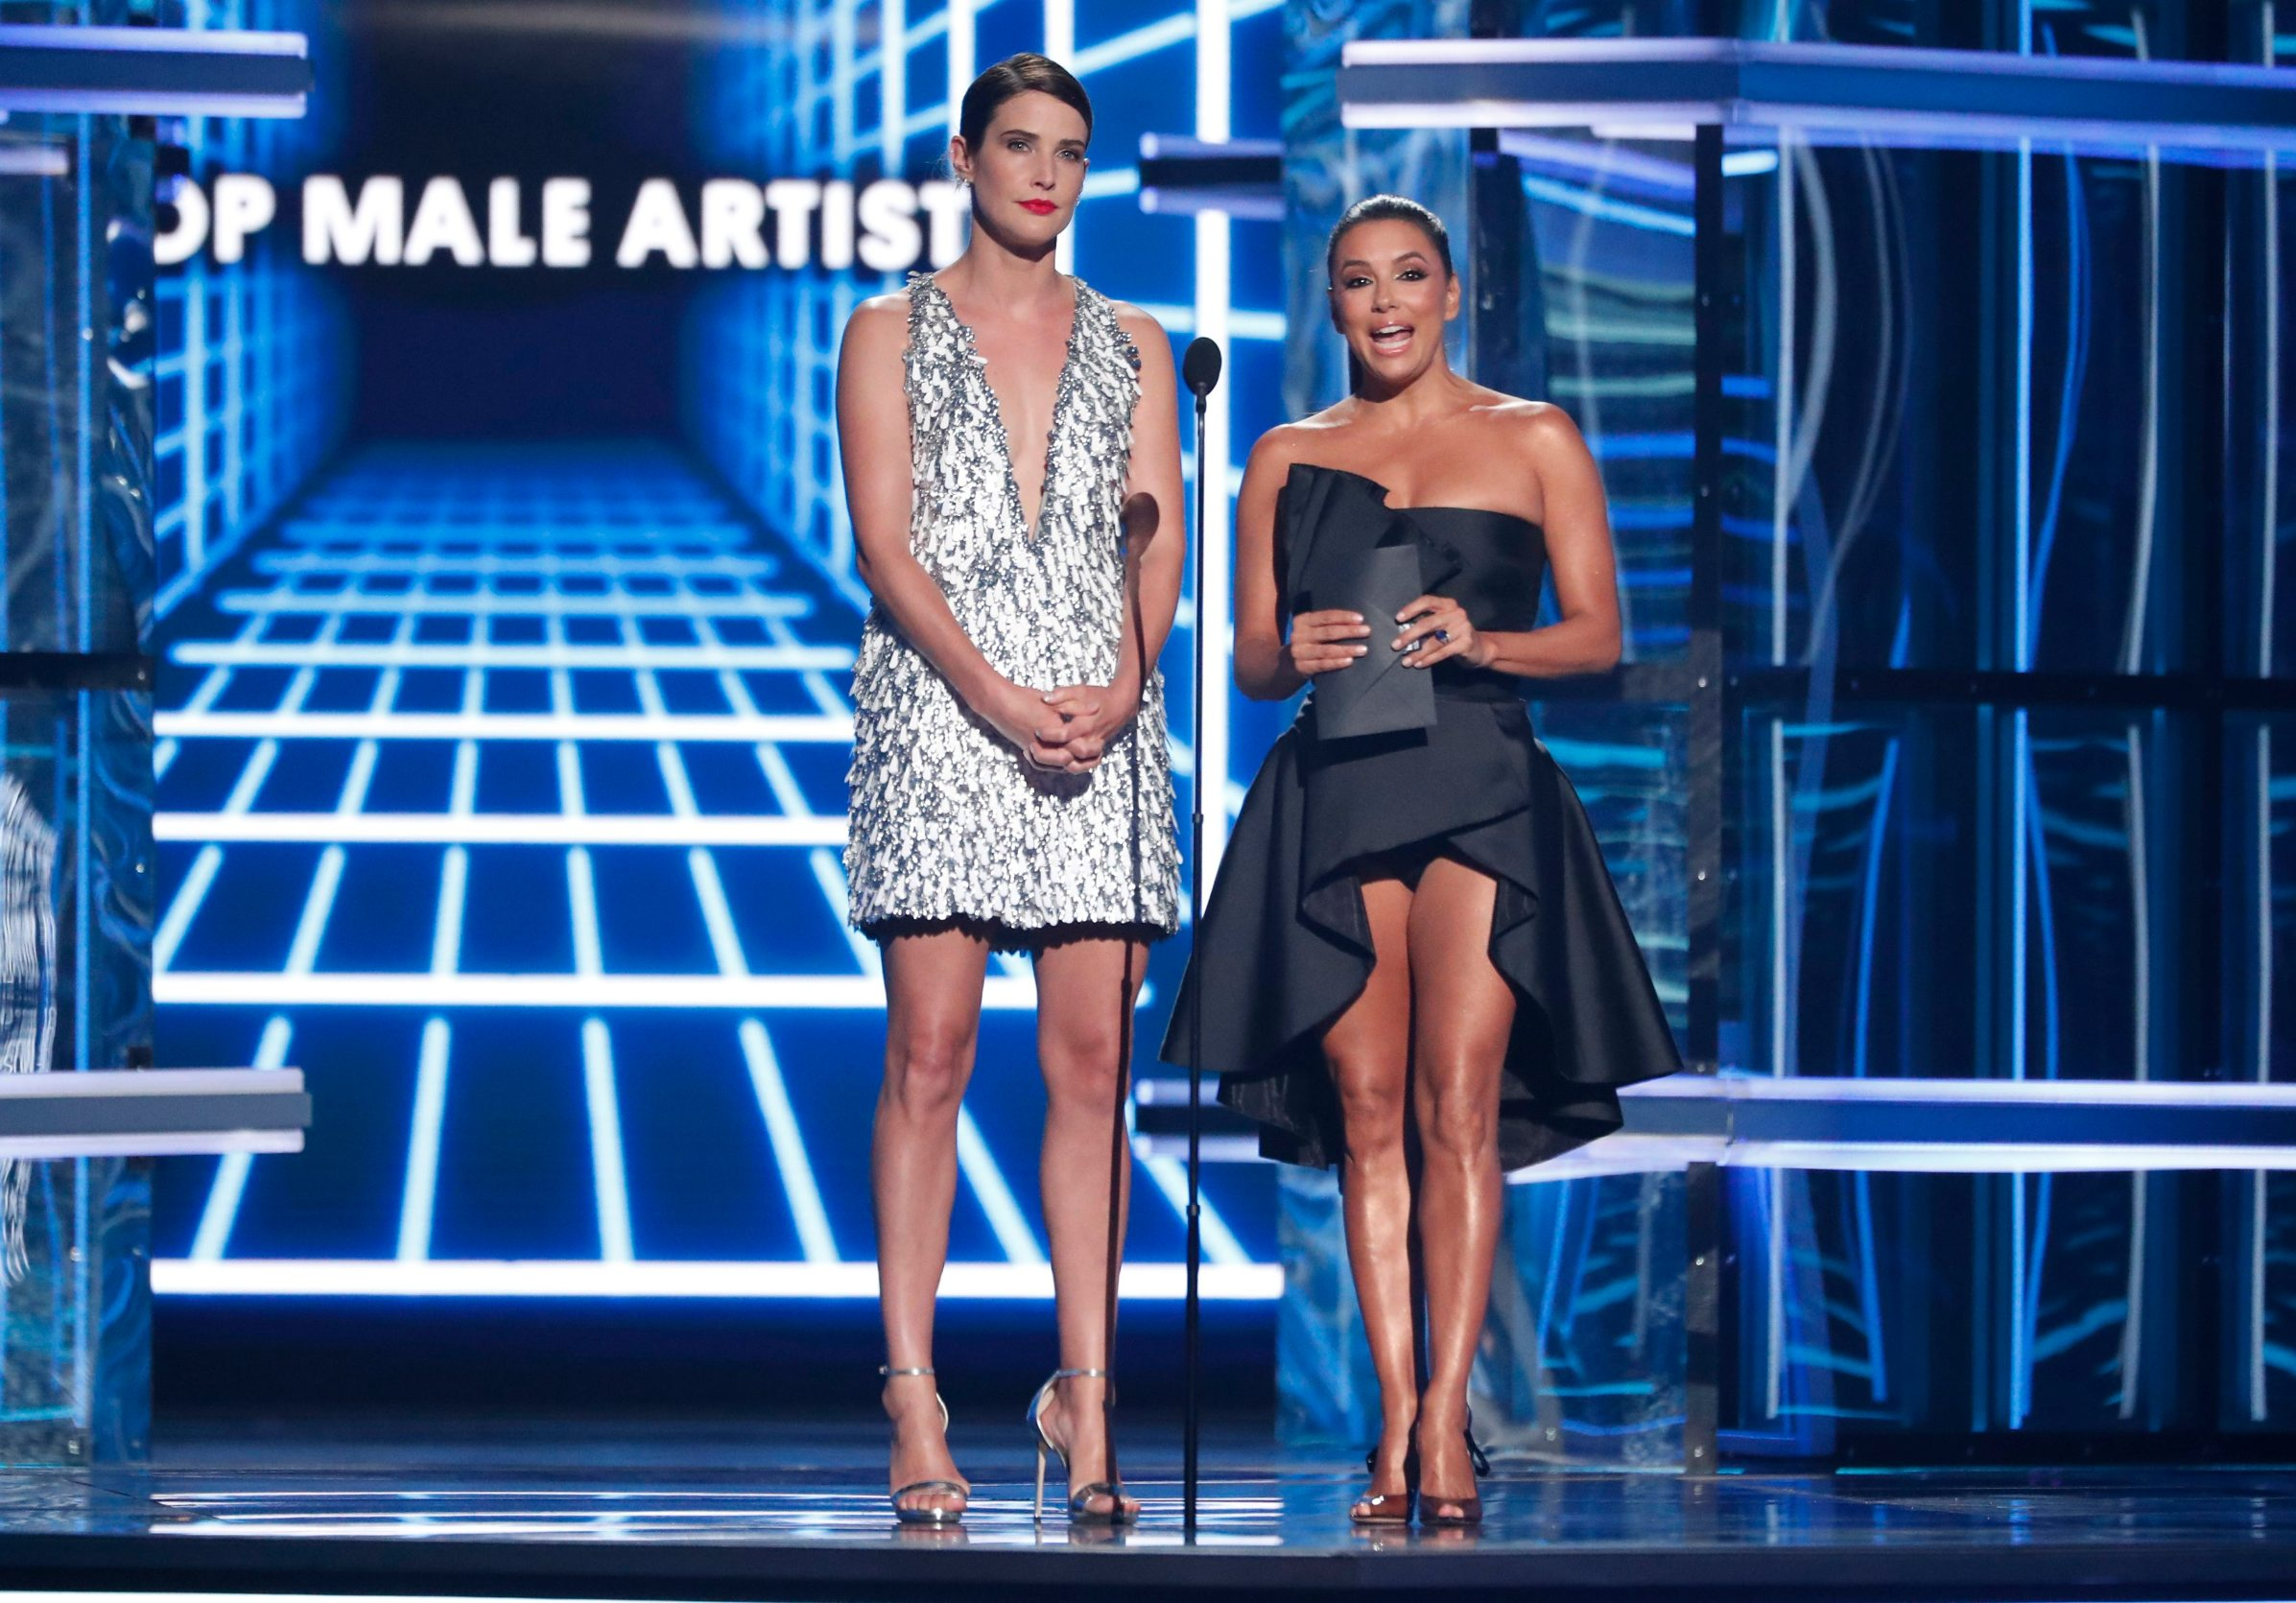 2019 Billboard Music Awards- Show - Las Vegas, Nevada, U.S., May 1, 2019 - Presenters for the Billboard Awards Top Male Artist, Cobie Smulders and Eva Longoria, speak on stage. REUTERS/Mario Anzuoni